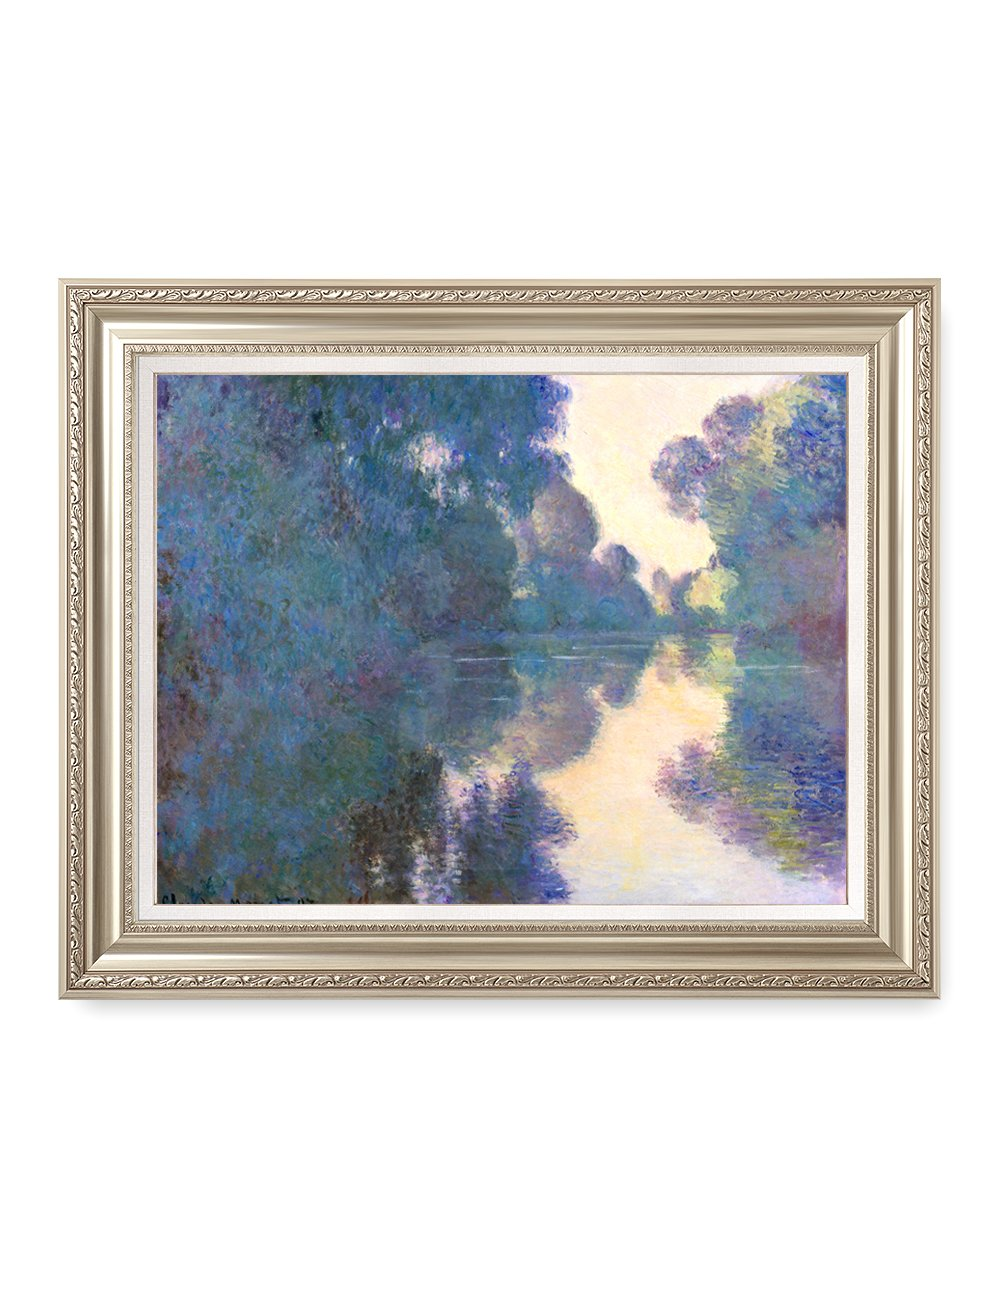 DecorArts - Morning on the Seine near Giverny Claude Monet Art Reproduction. Giclee Print& Museum Quality Framed Art for Wall Decor.